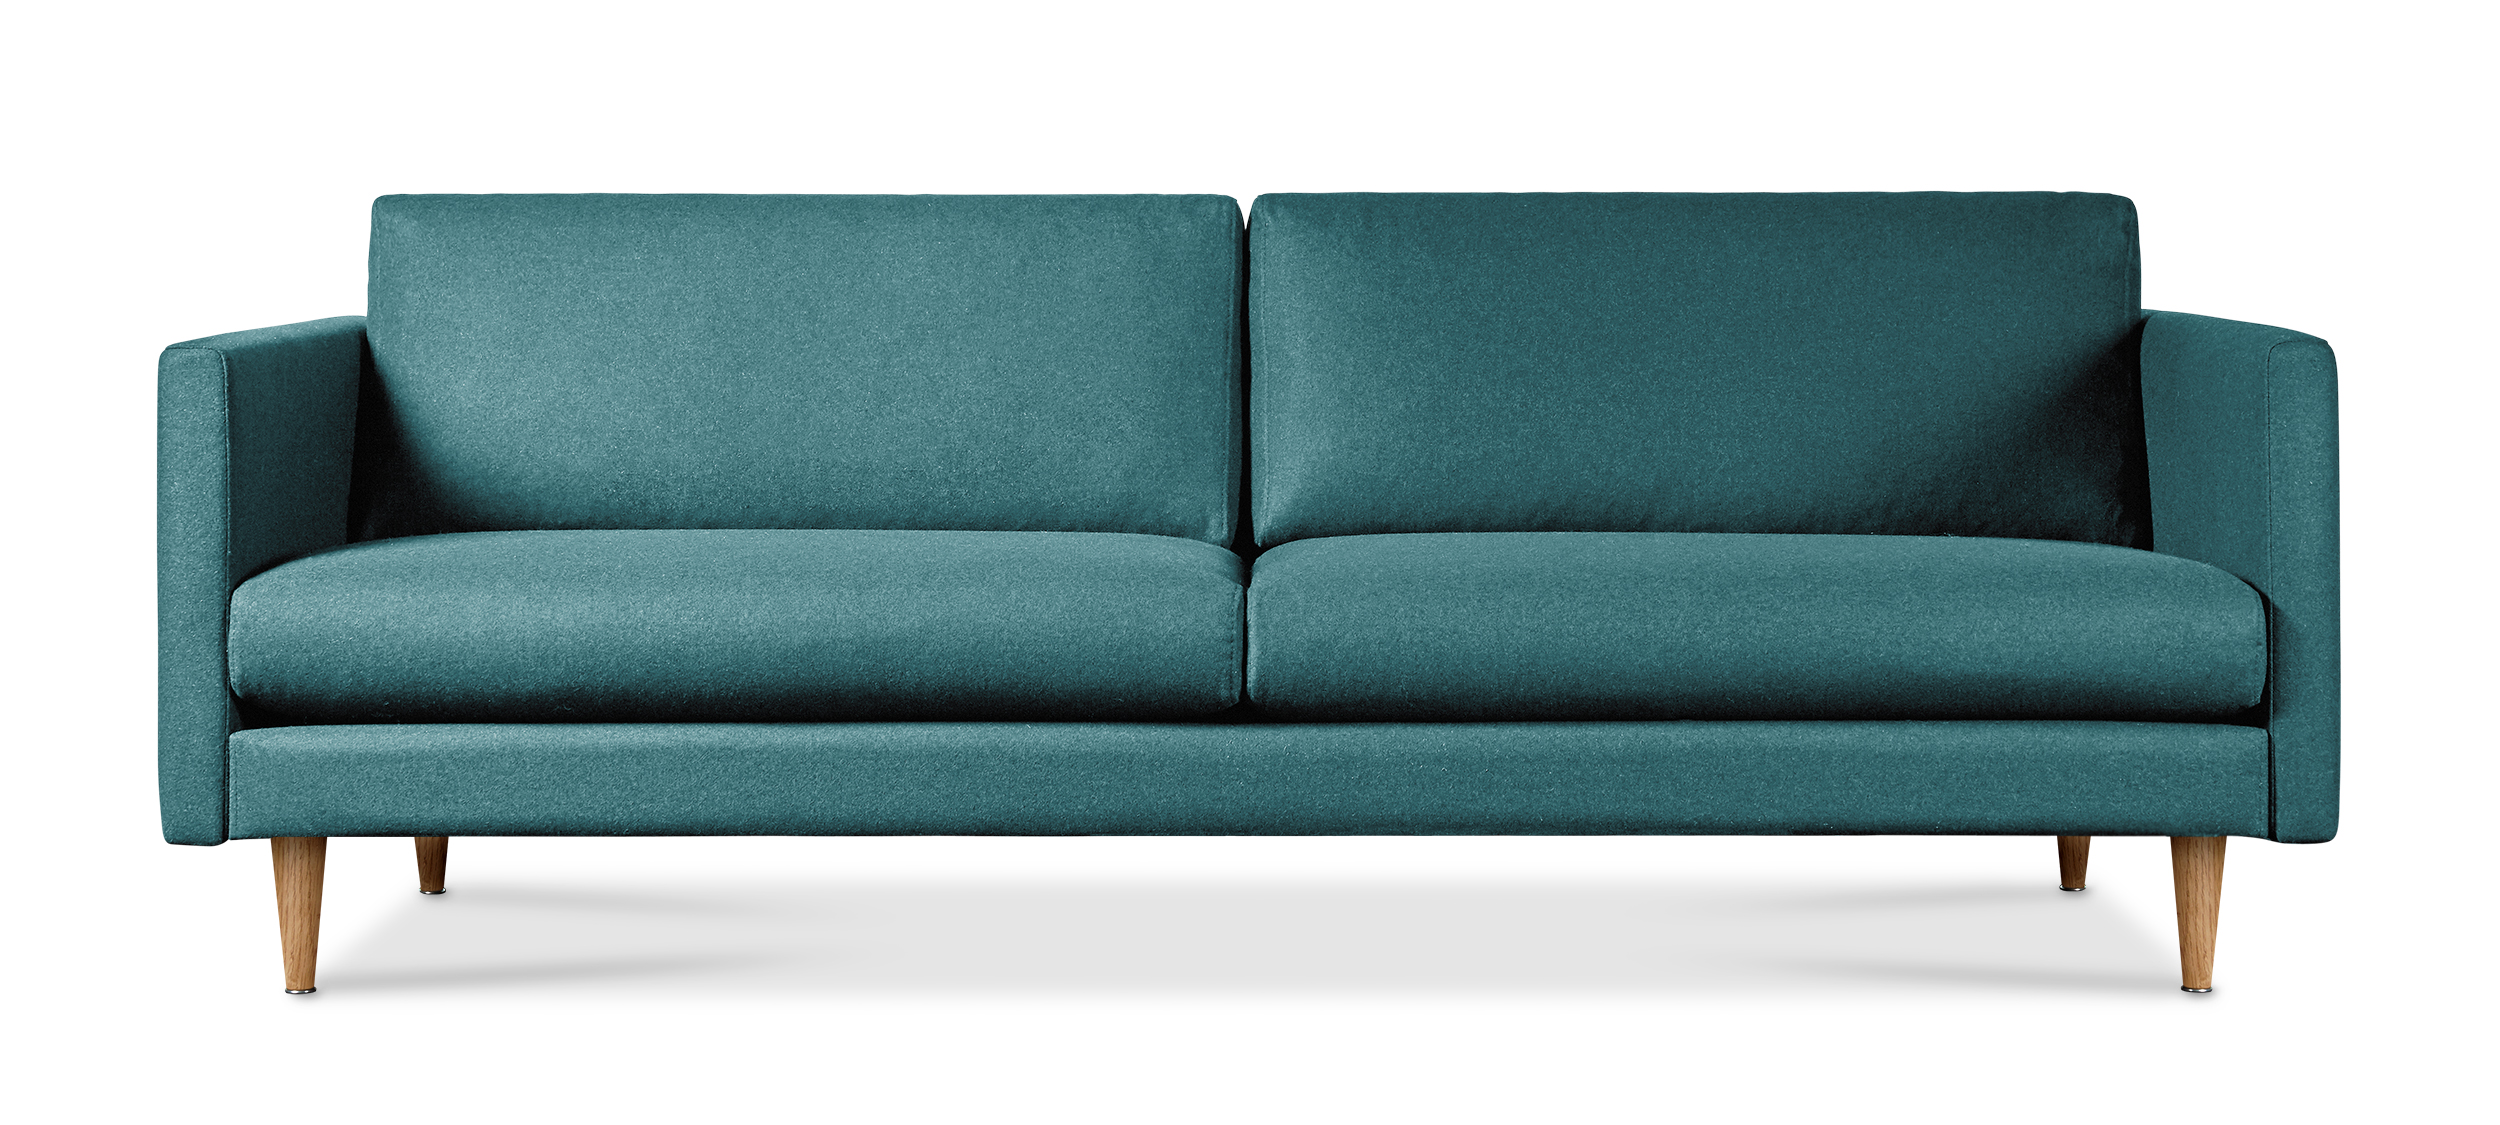 Tivoli Three Seater Sofa Ocean Blue Wool Birch .jpg